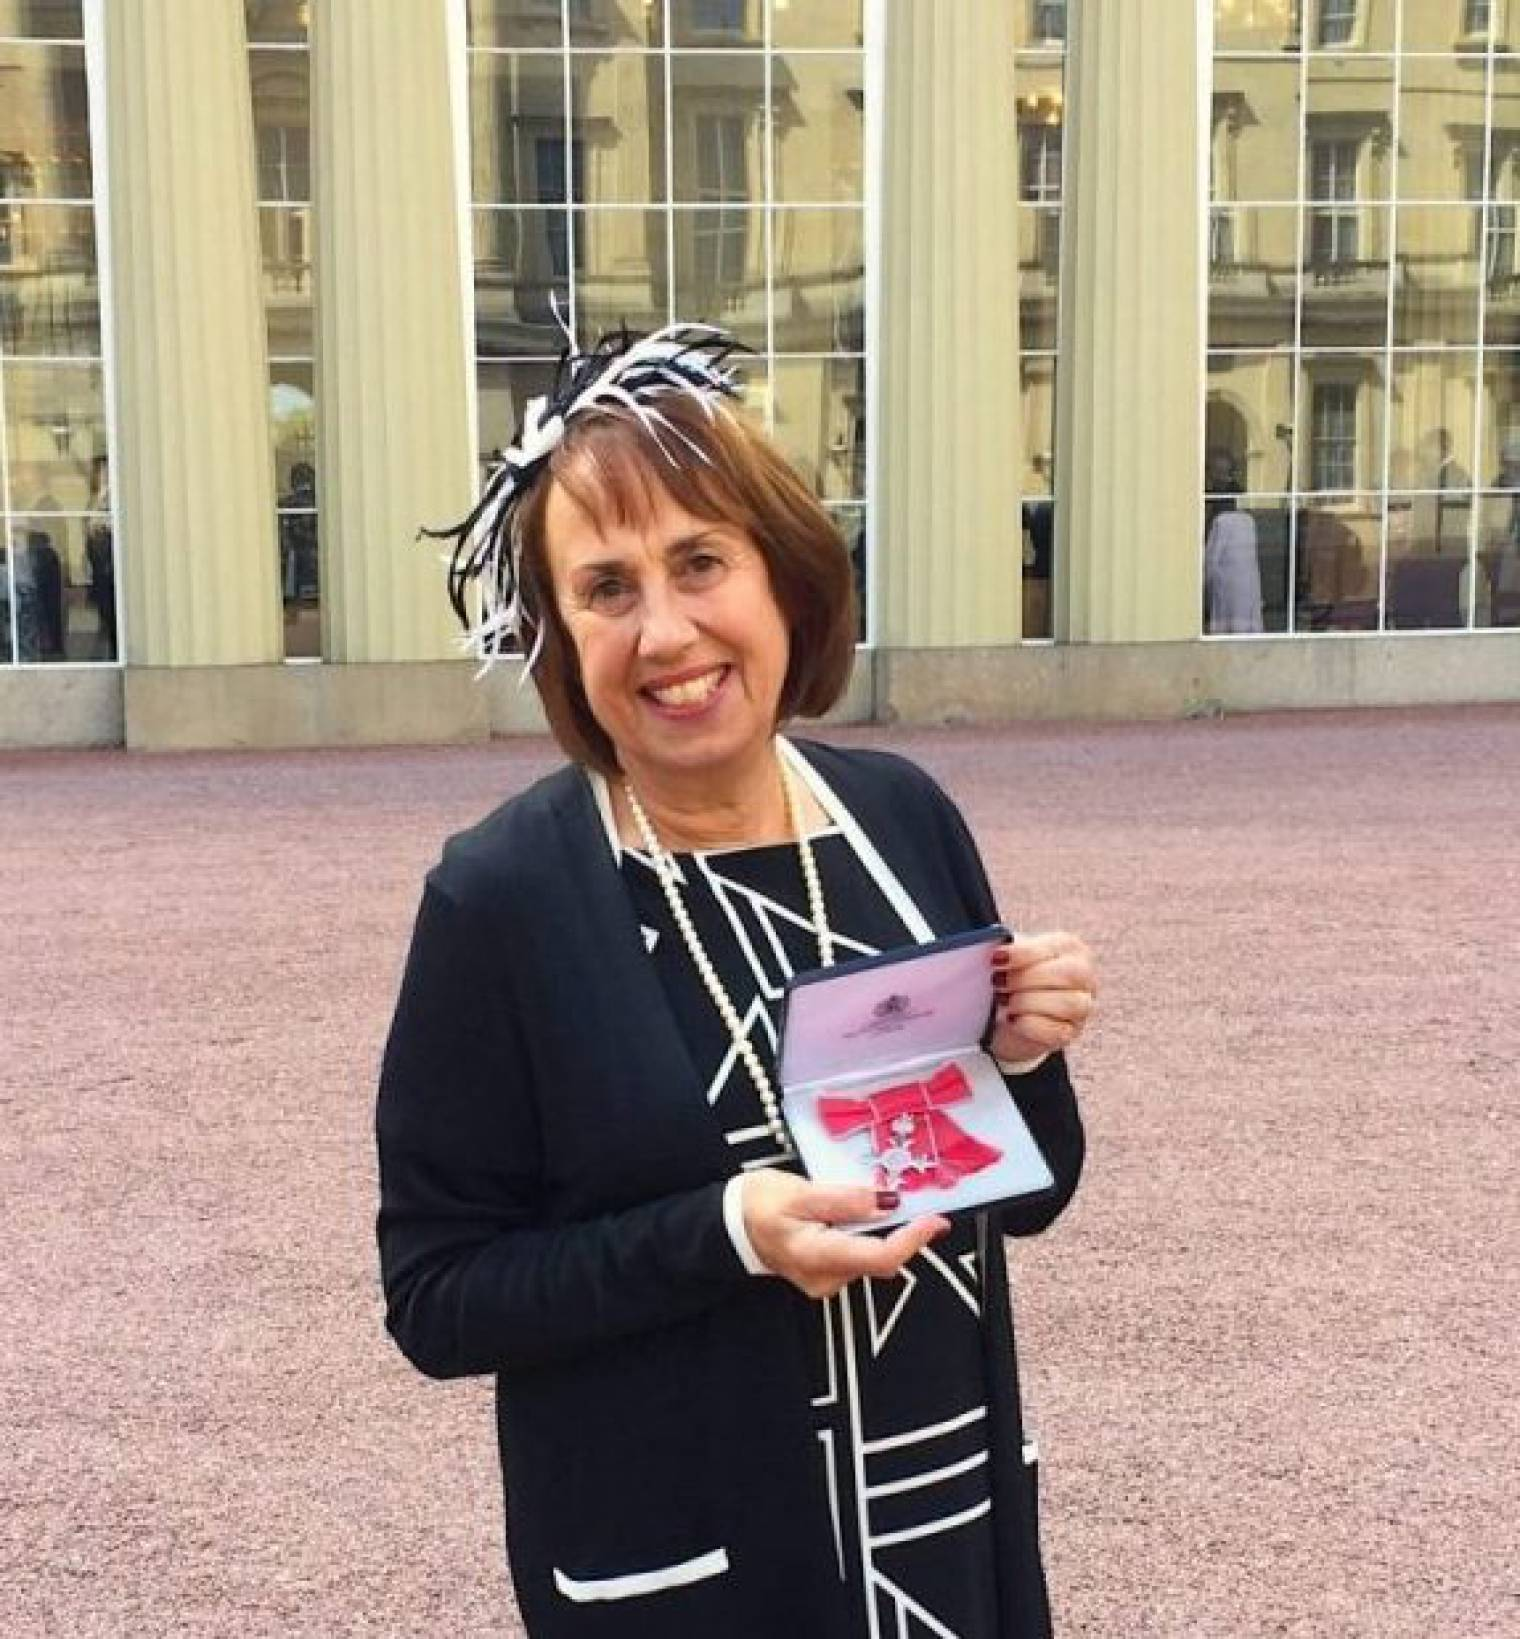 Sandra Landau receives MBE Award from HRH Princess Anne